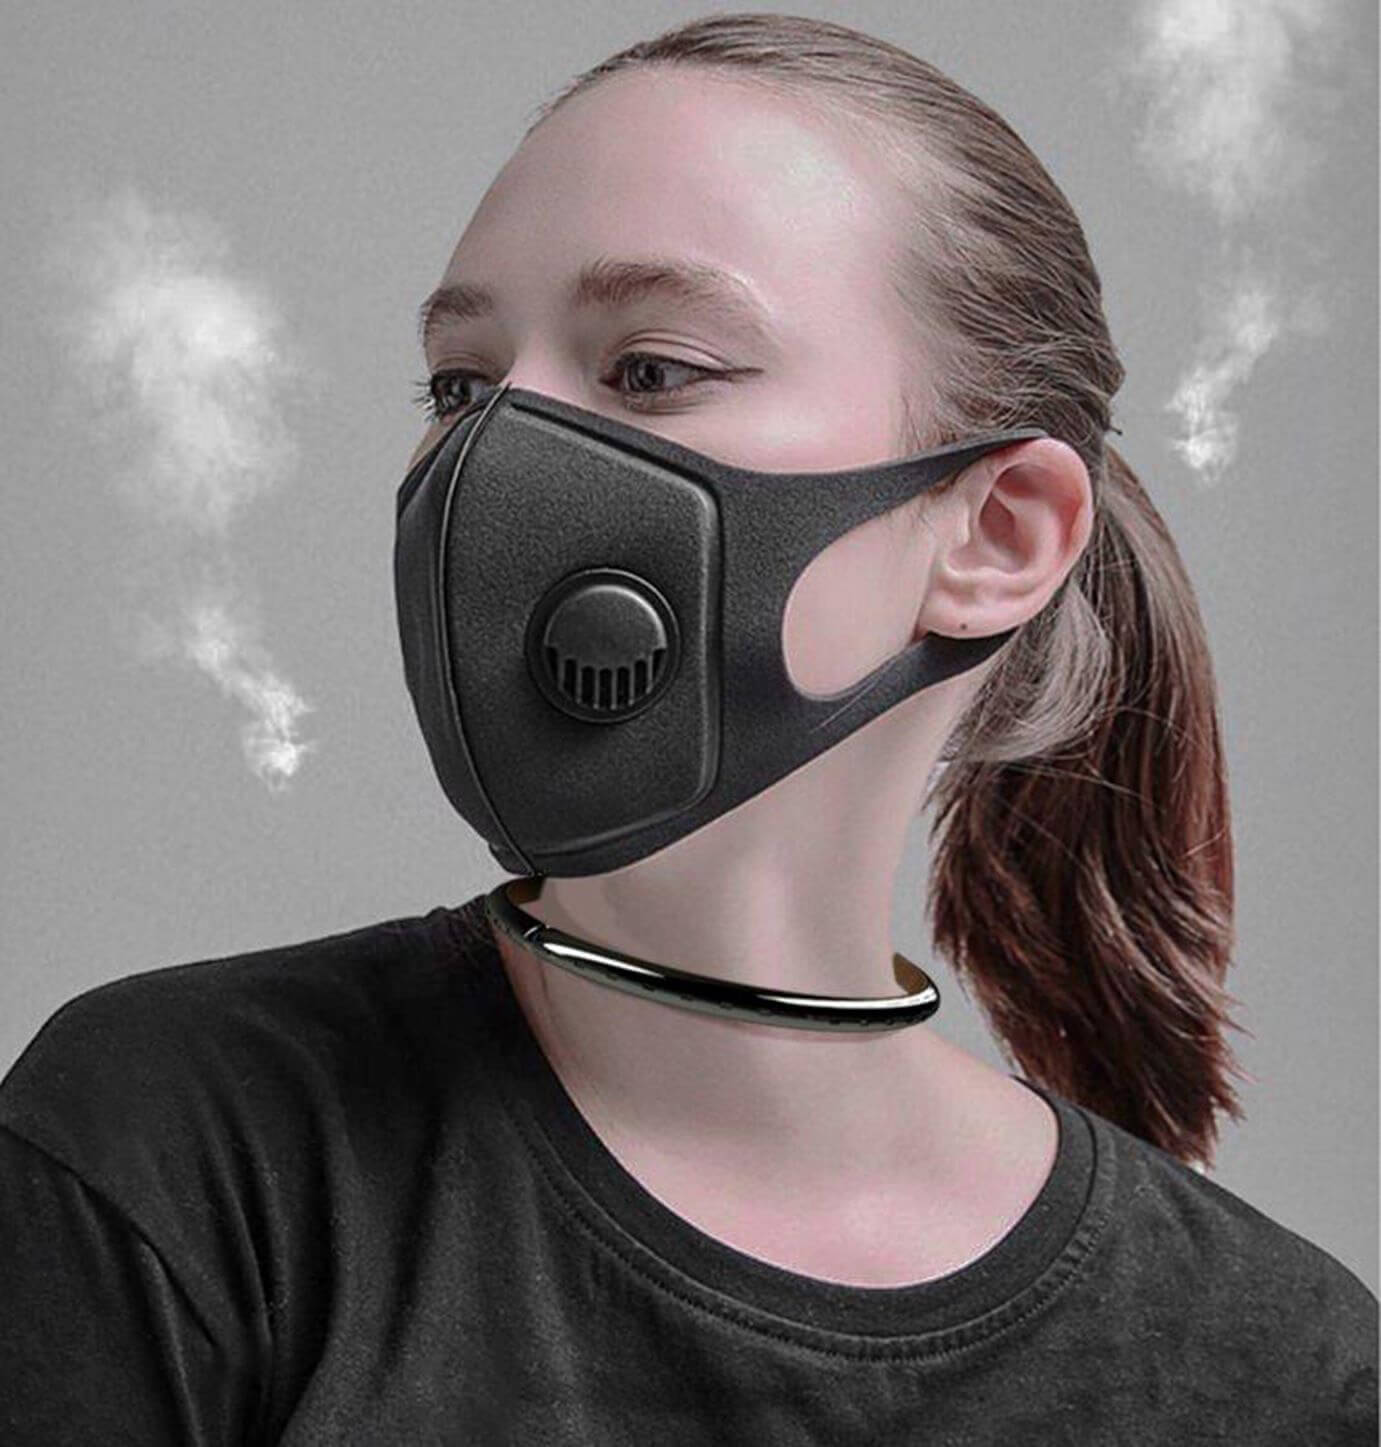 sChoker, a social distancing neck brace | Capsule for Automated Travel | Architecture Discipline| STIRworld